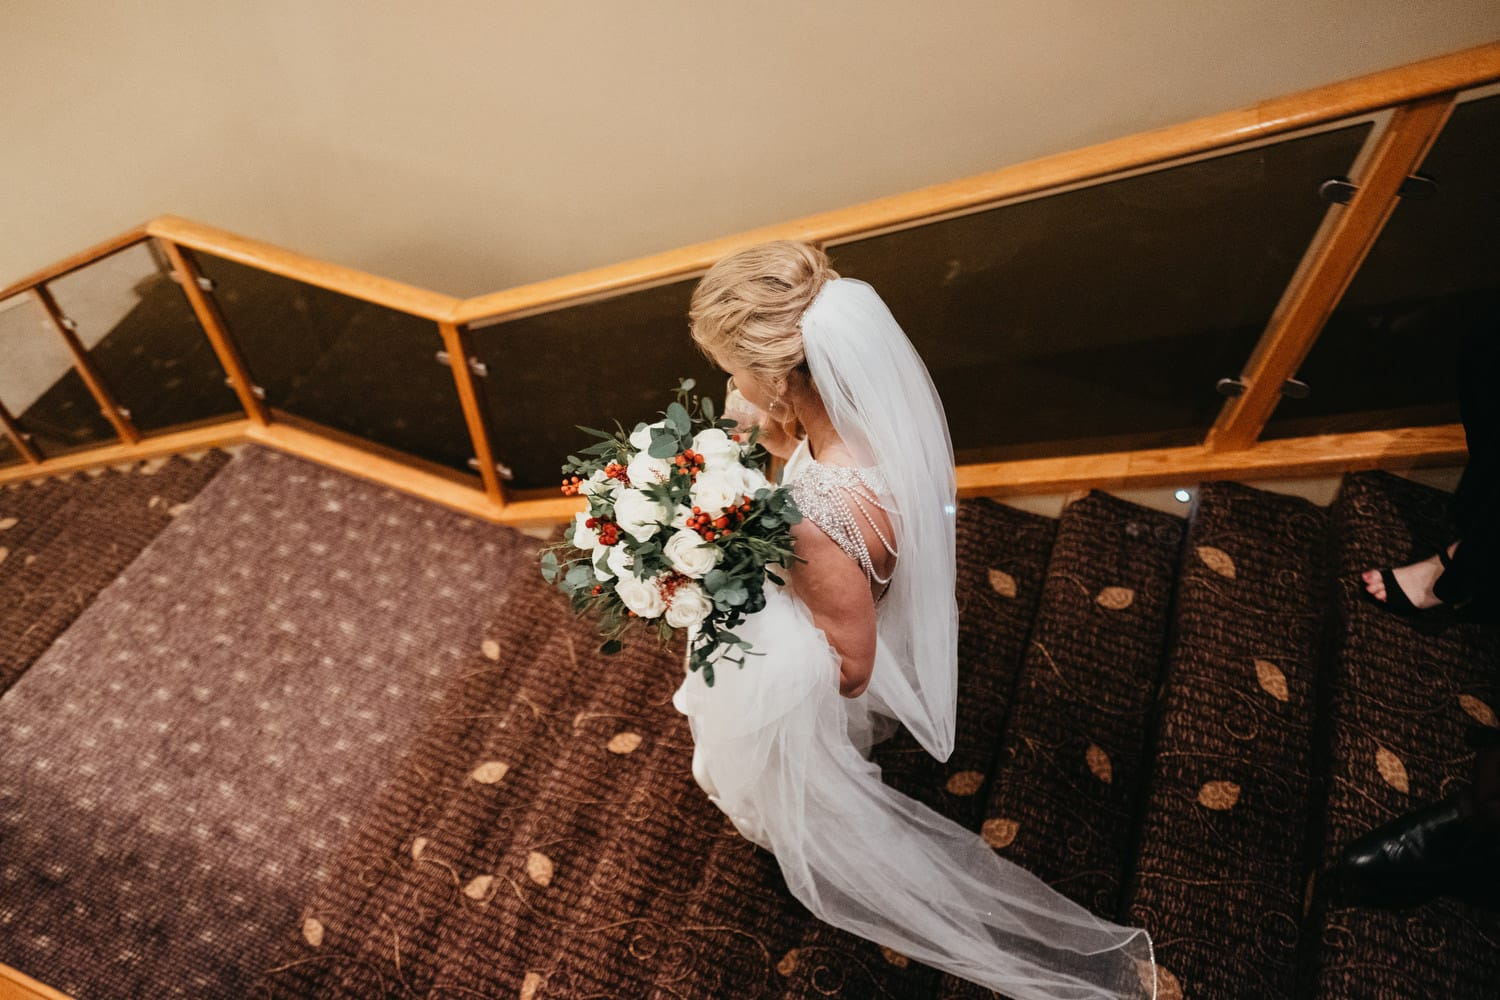 brie walking down the stairs at wedding reception